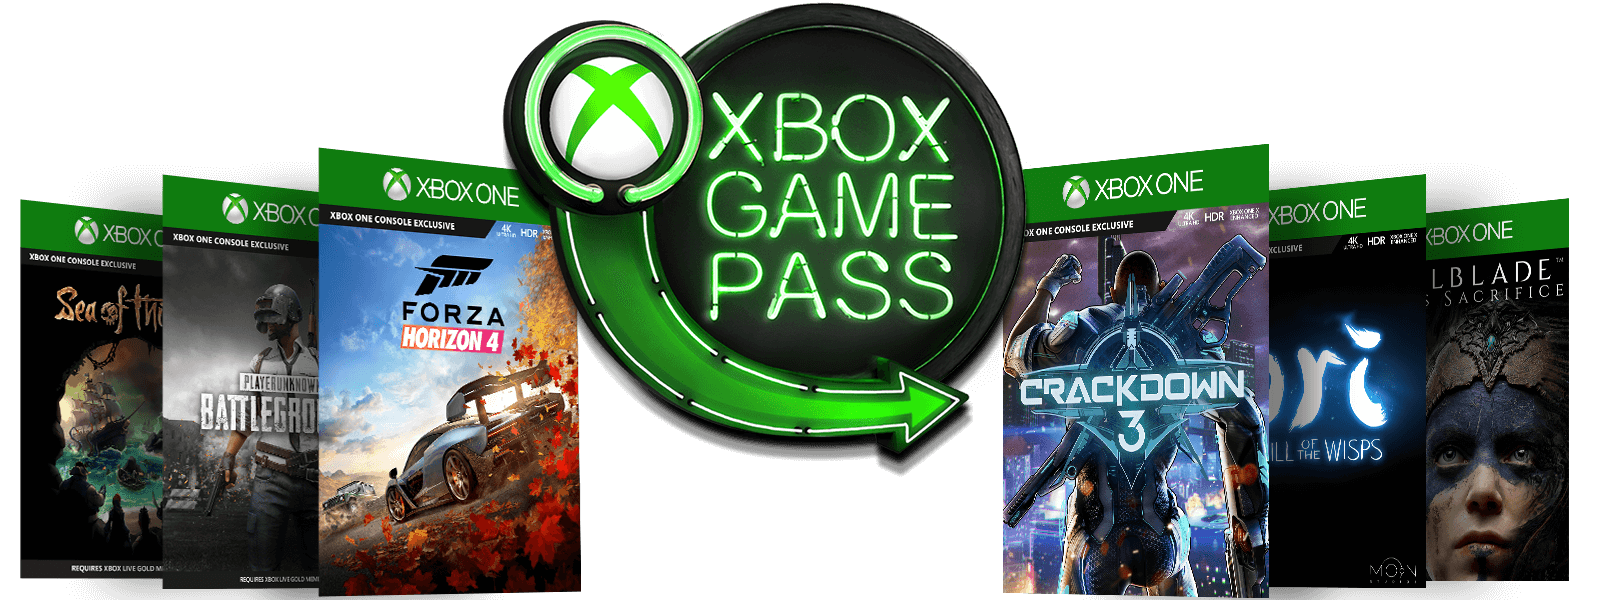 Imágenes de la caja de Sea of Thieves, PLAYERUNKNOWNS Battleground, Forza Horizon 4, Crackdown 3, Ori Will of the Wisps y Hellblade Senuas Sacrifice alrededor del logotipo de cartel en neón verde de Xbox Game Pass